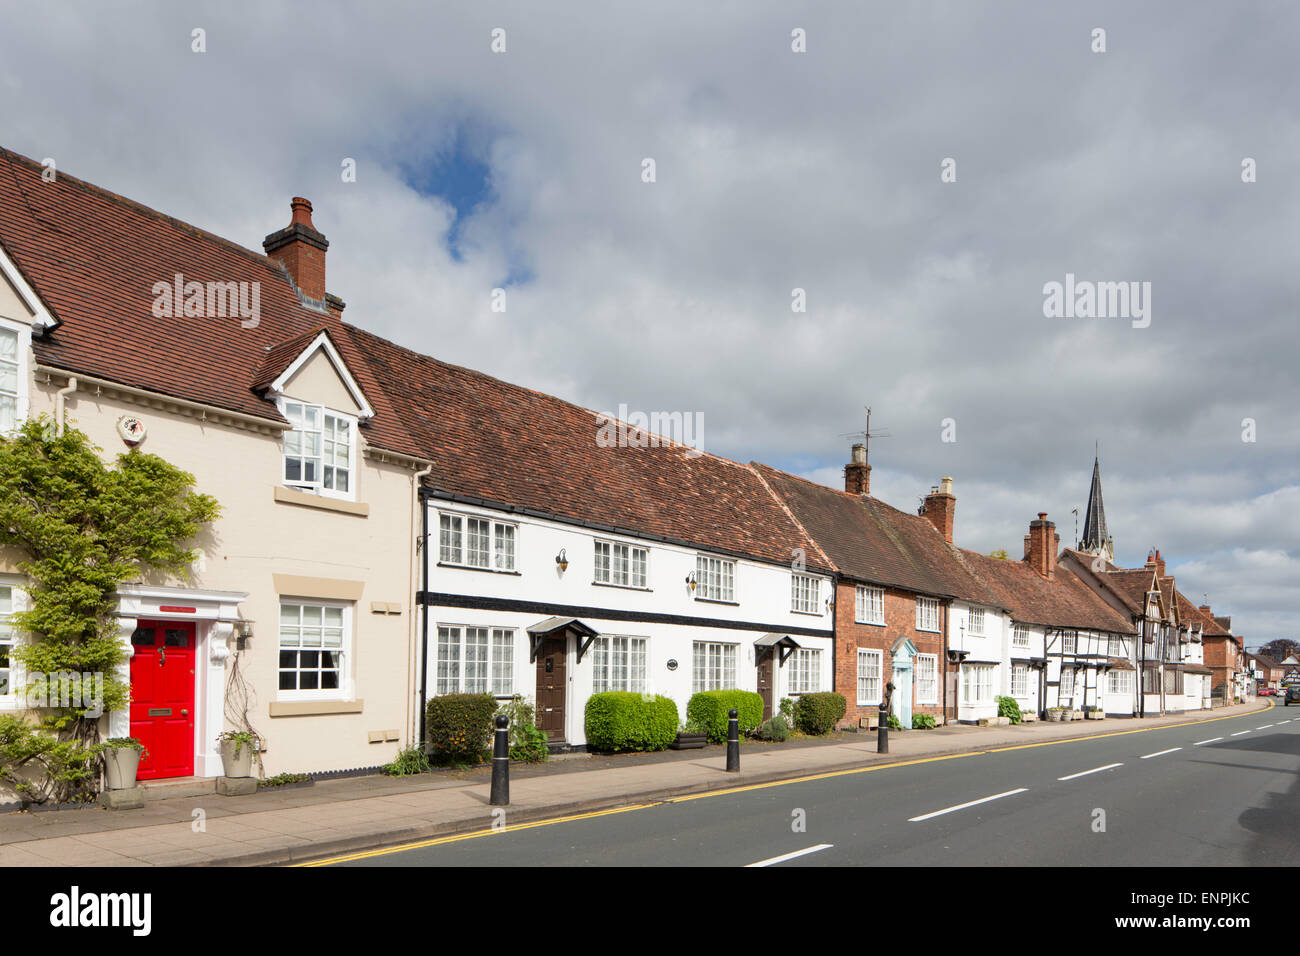 Timber frames cottages line the high street in Henley in Arden, Warwickshire, England, UK Stock Photo